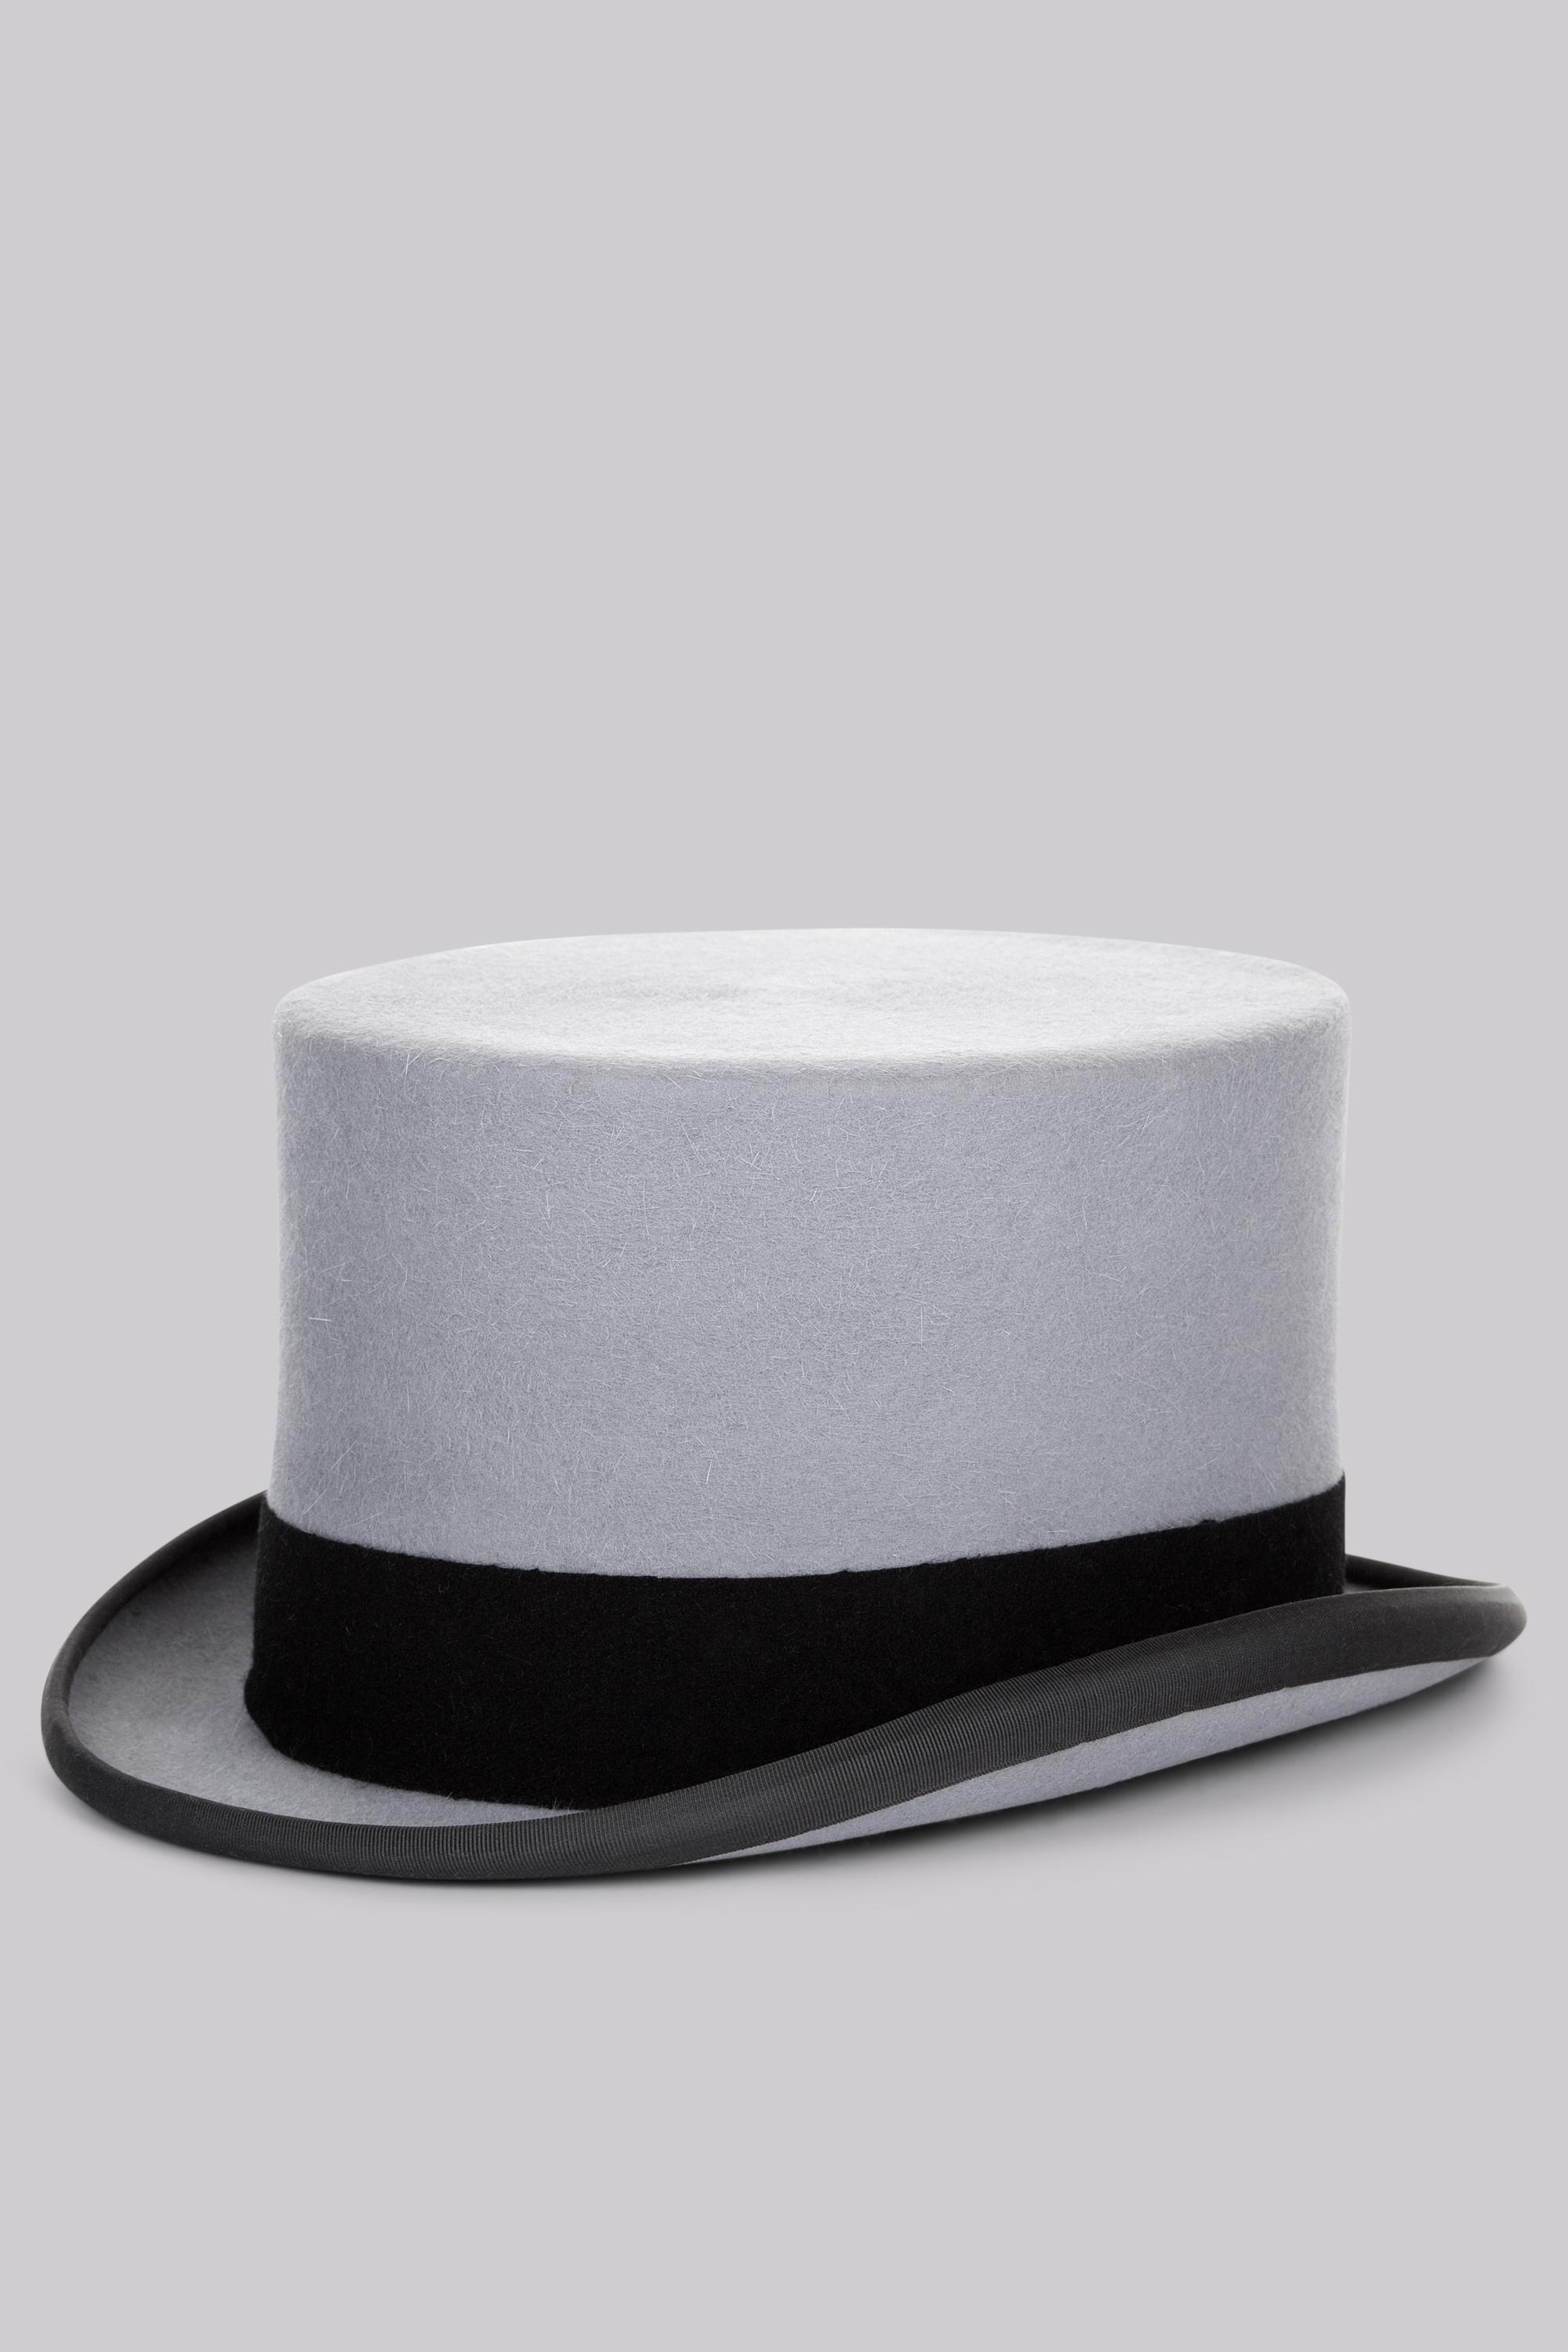 078eb32265f Moss Bros . Grey Ascot Top Hat in Gray for Men - Lyst